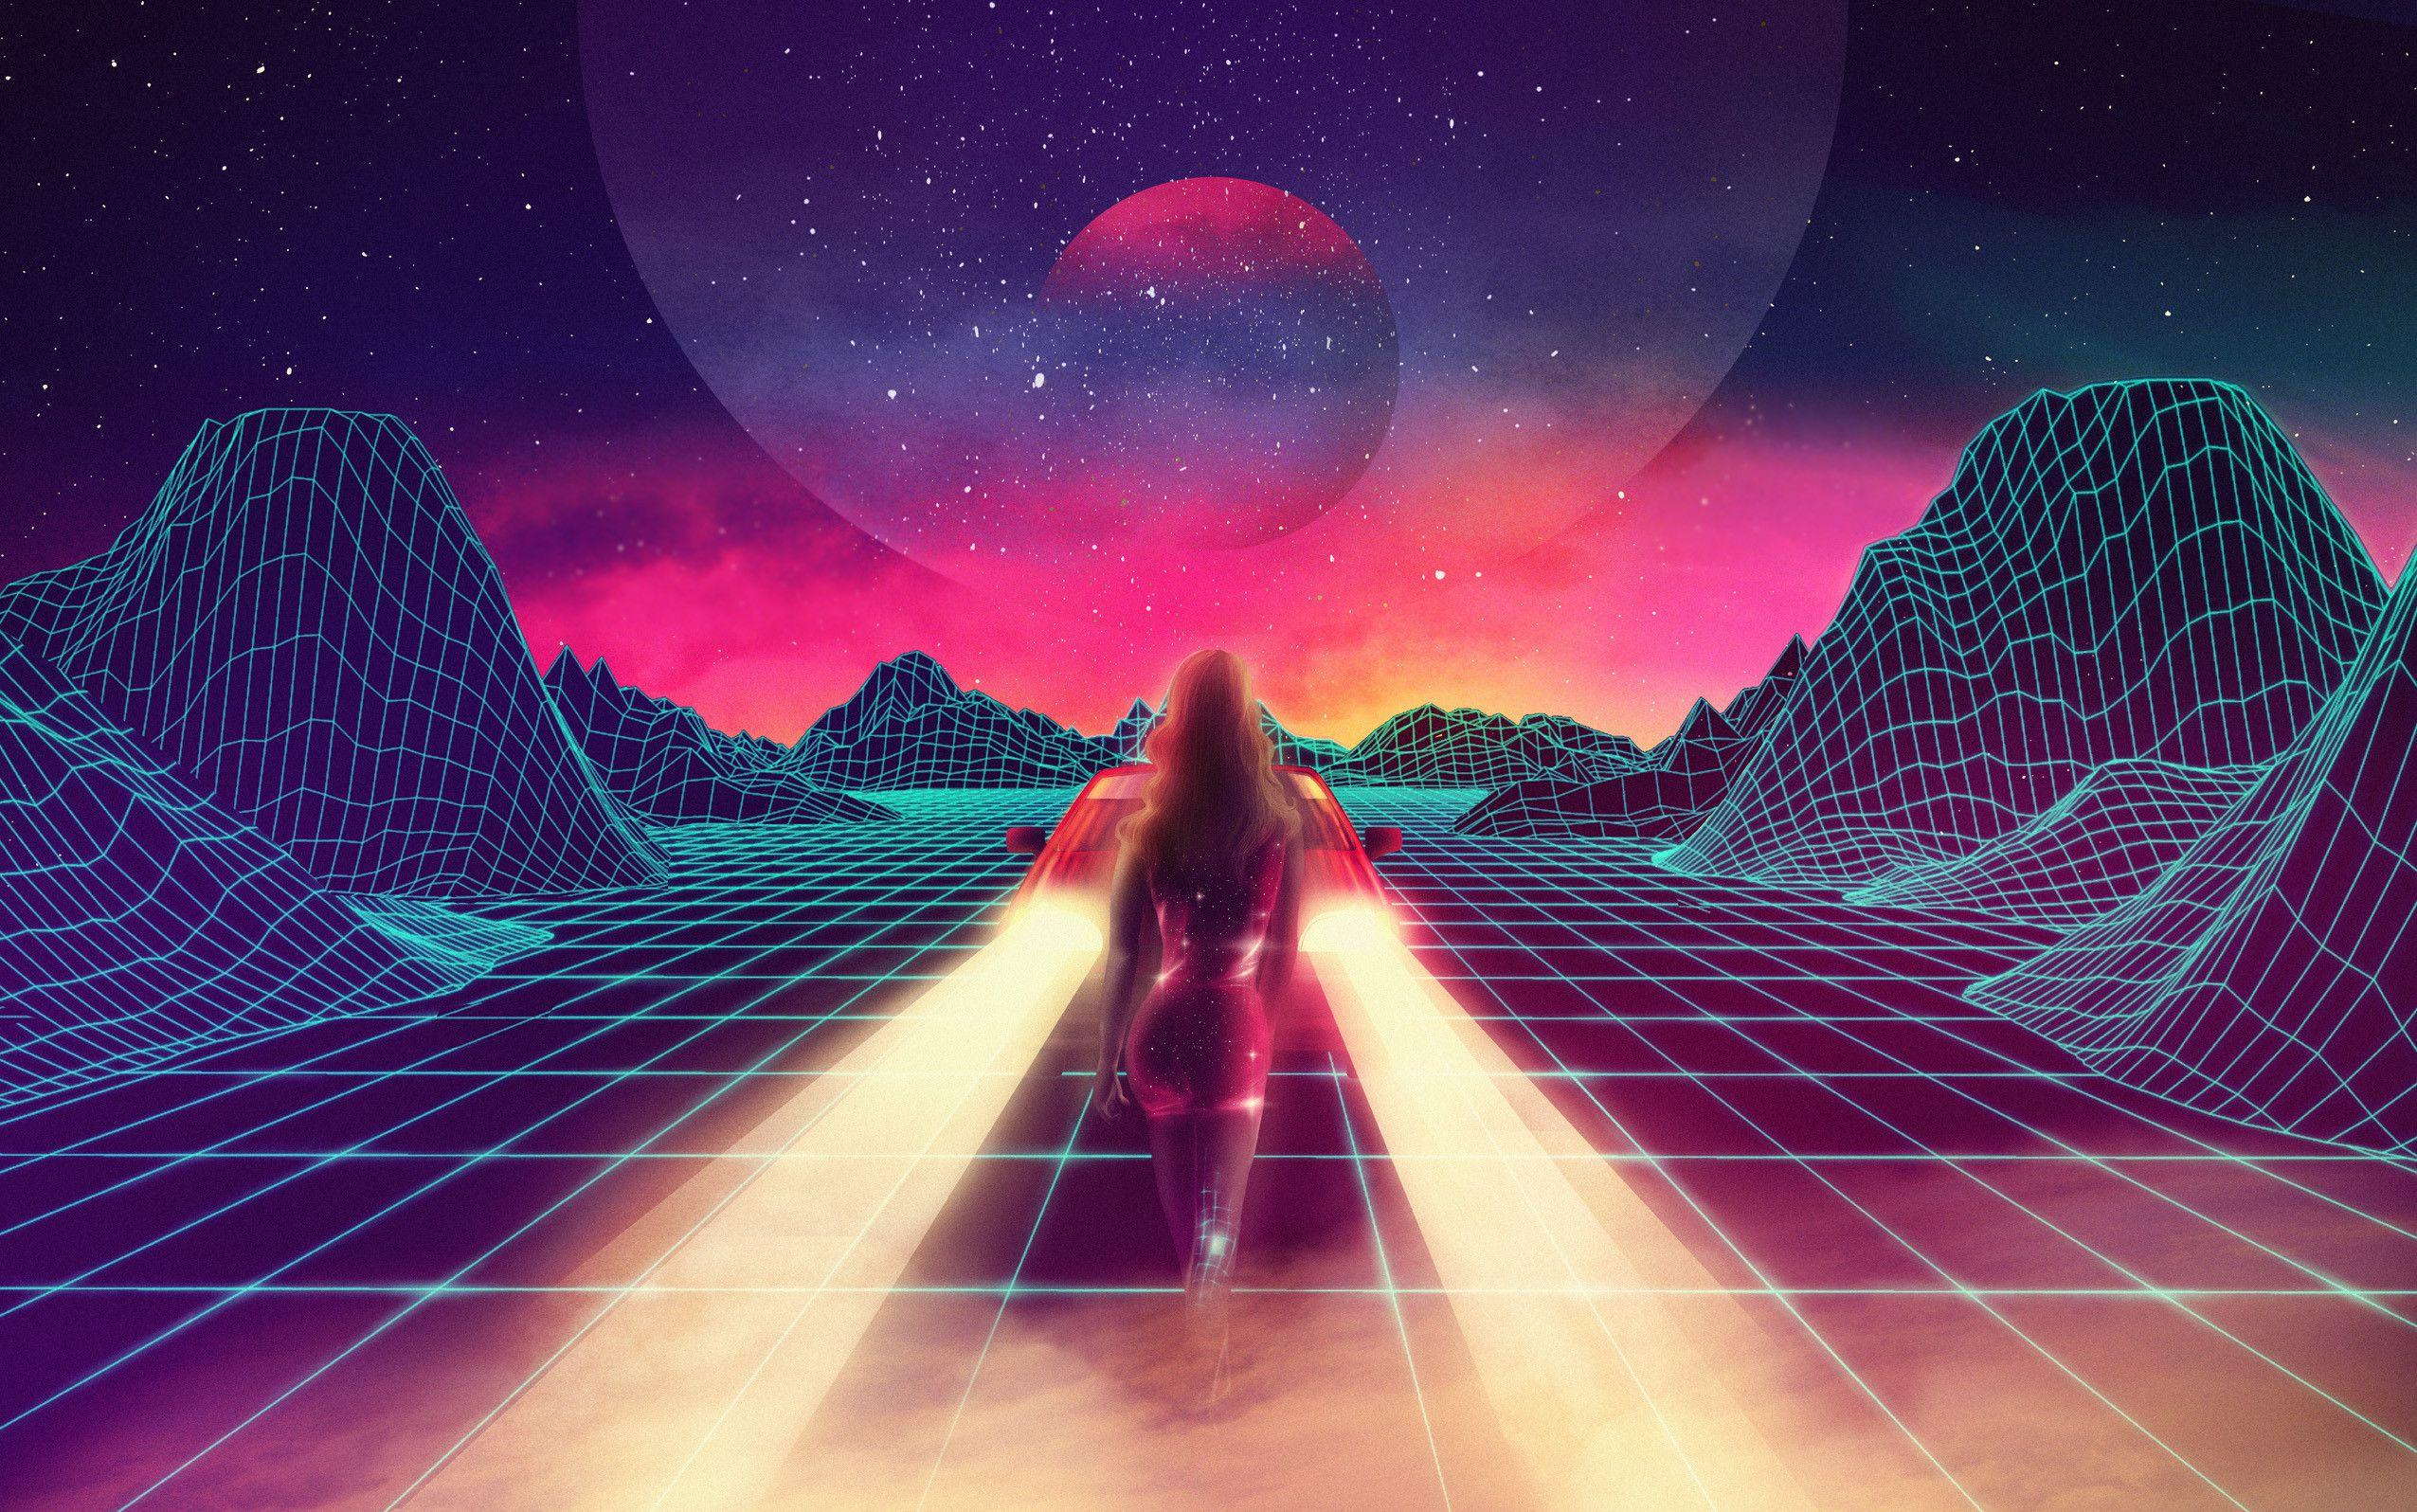 Looking for Outrun/80s style backgrounds or wallpapers : outrun